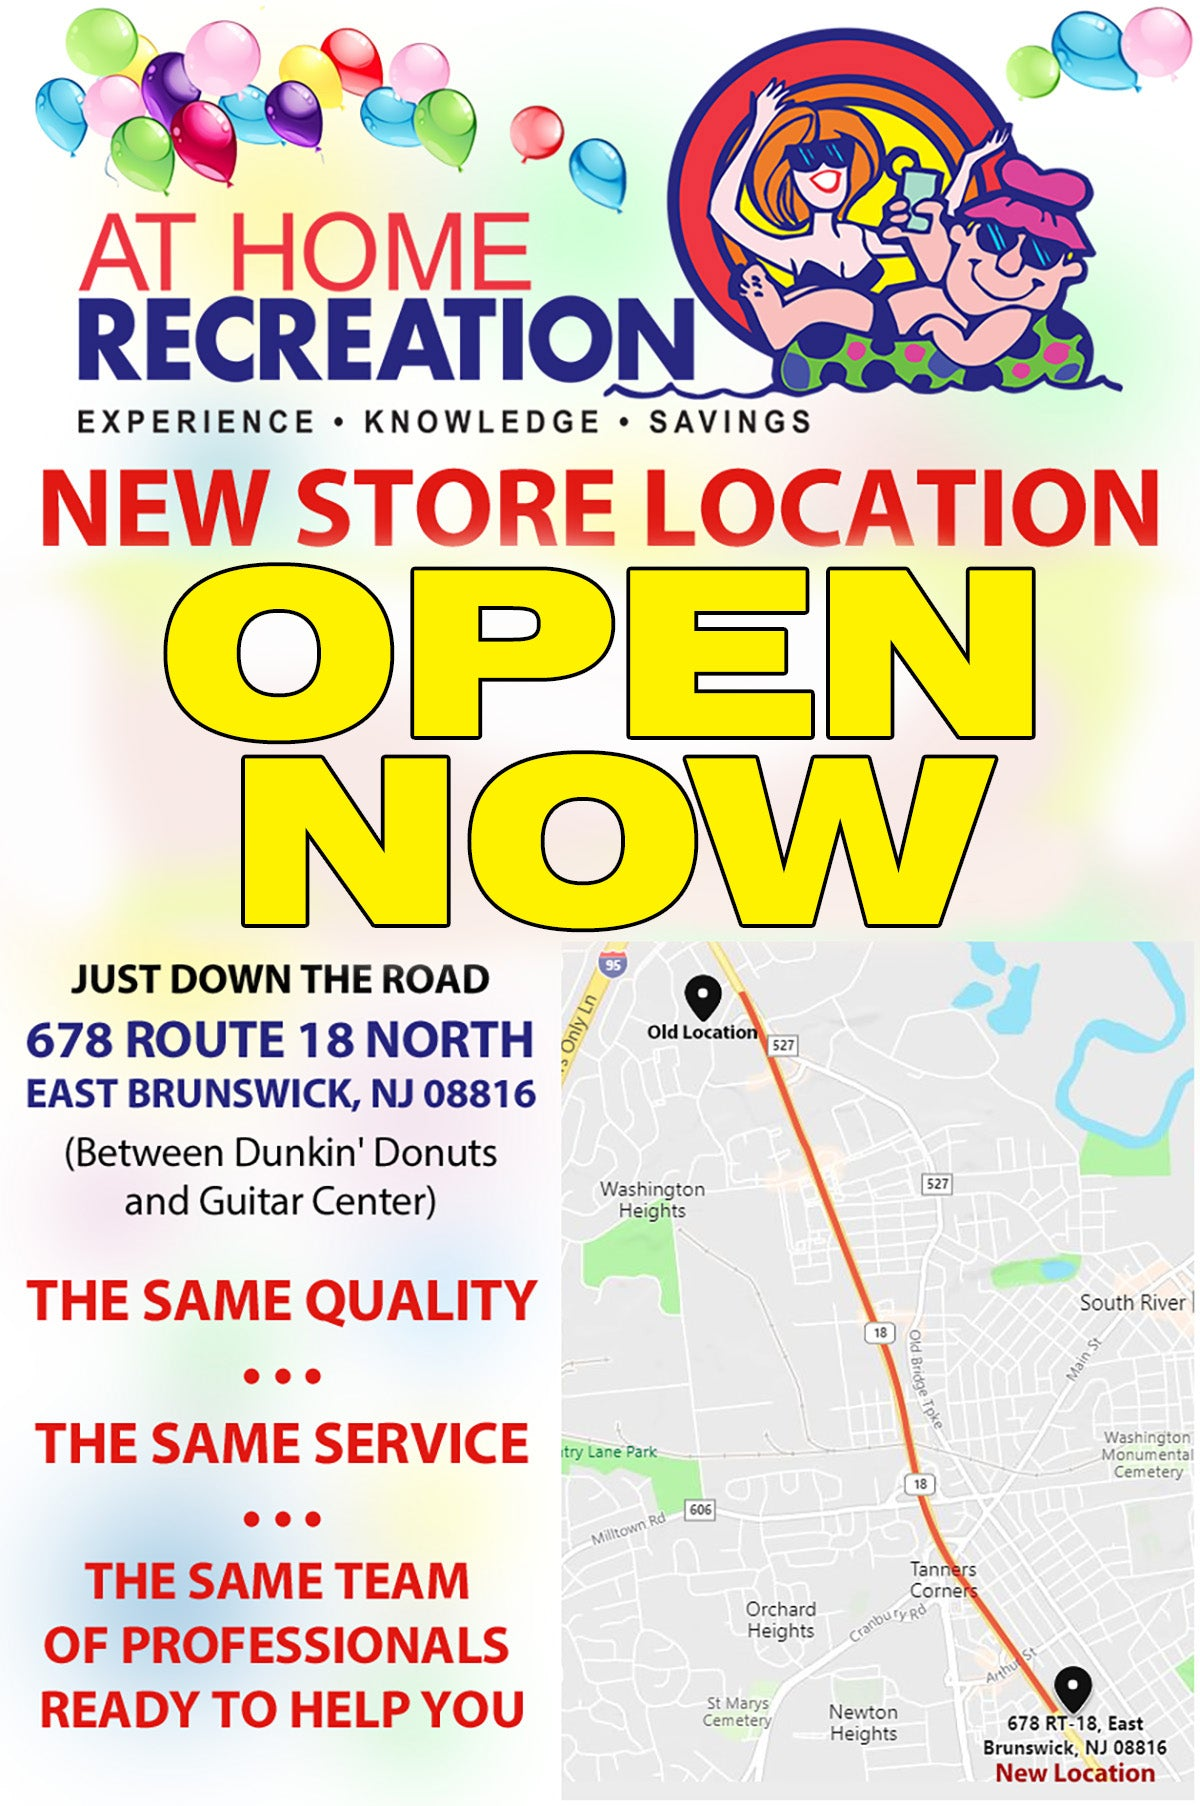 New Store Location Opening